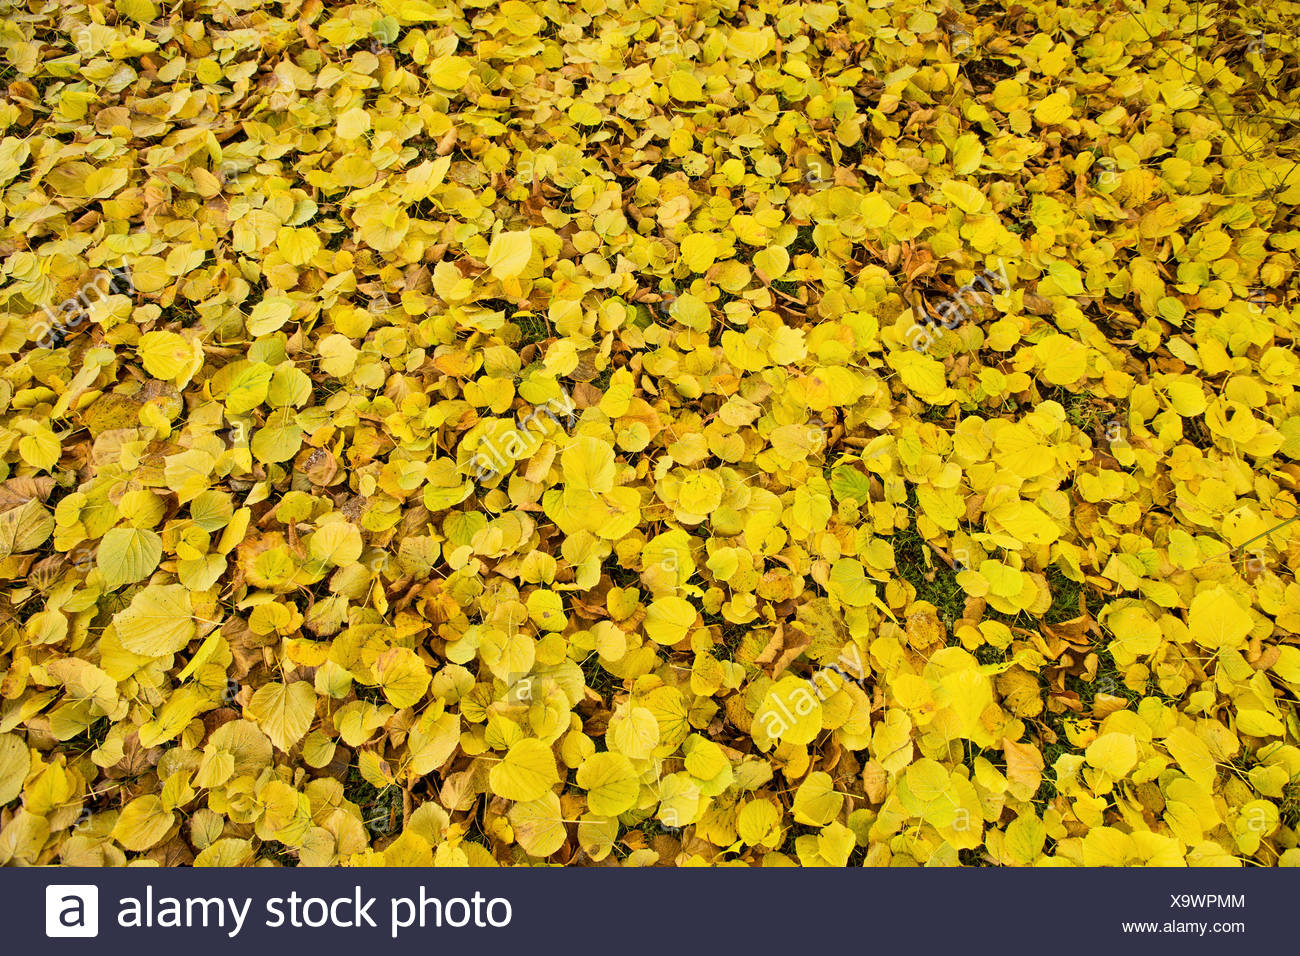 large-leaved lime, lime tree (Tilia platyphyllos), golden autumn leaves on the ground, Germany, Bavaria Stock Photo